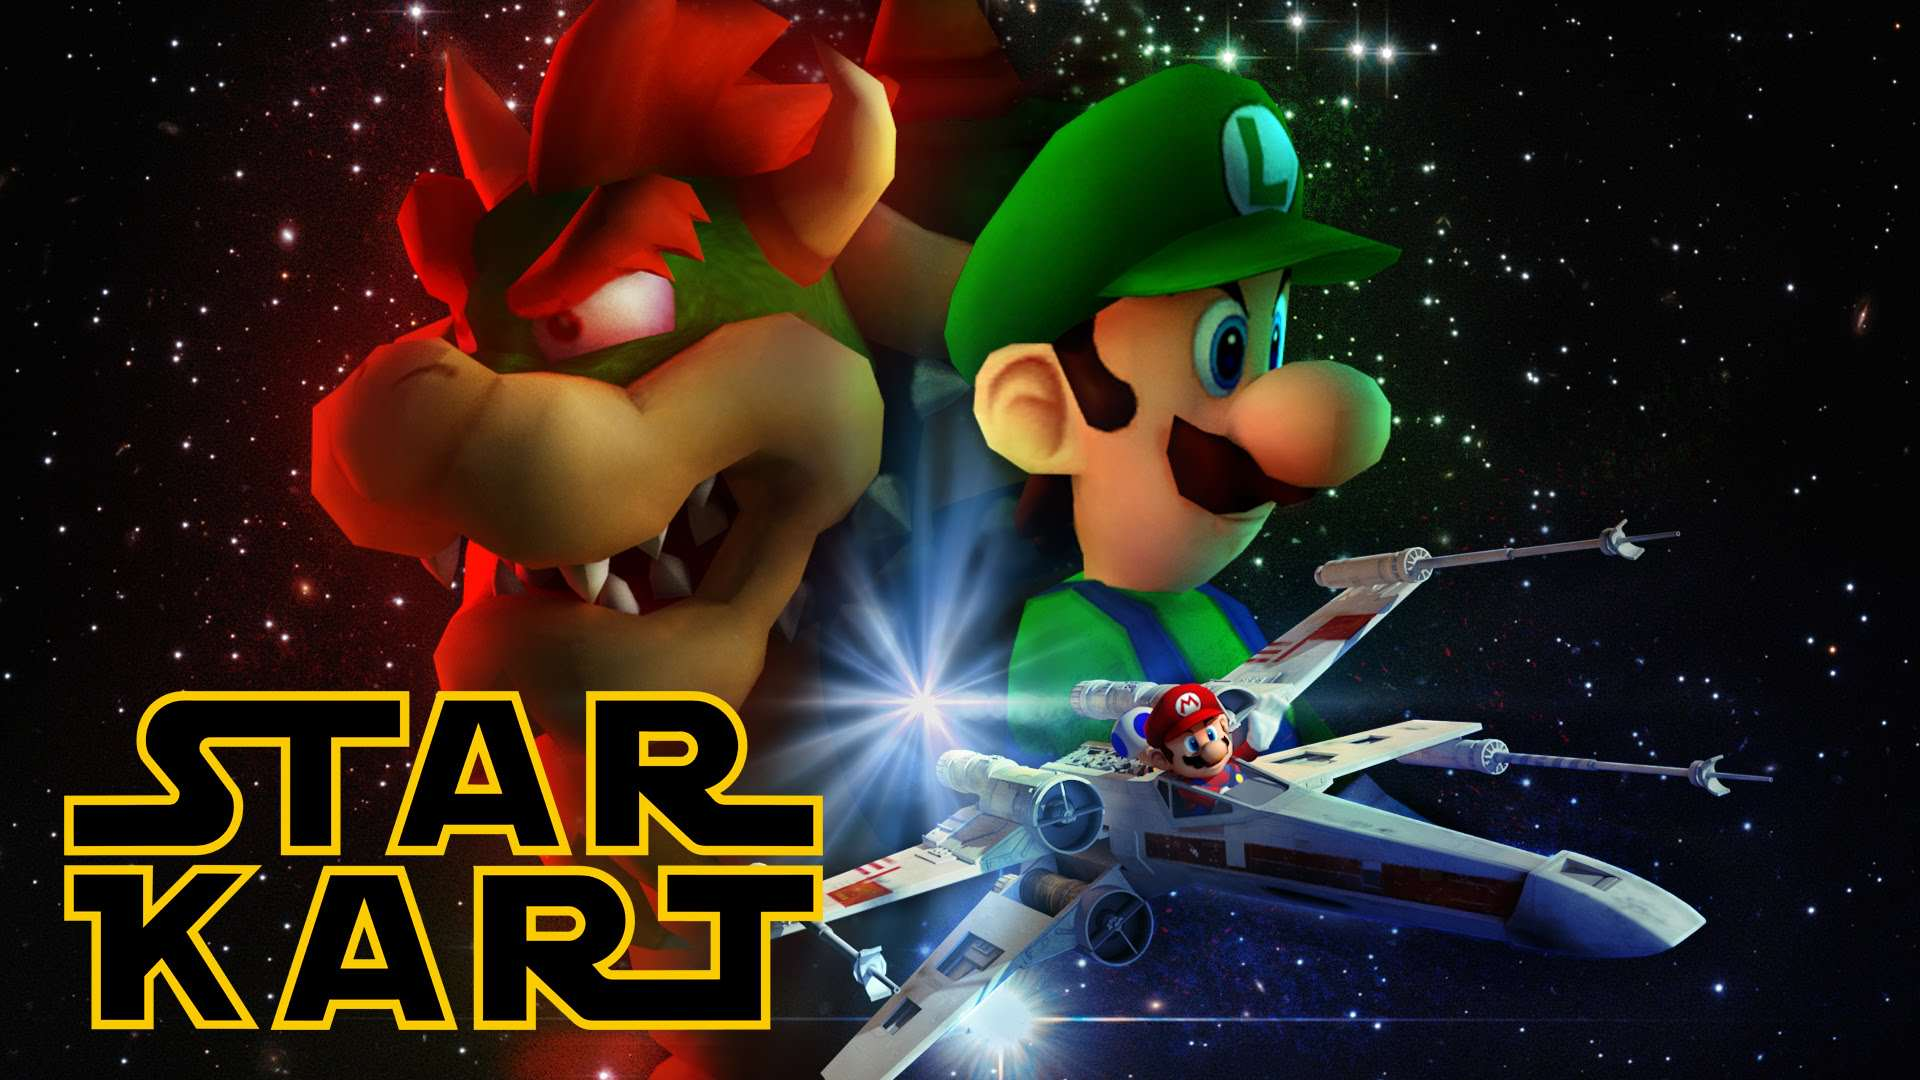 maxresdefault 20 Star Wars And Mario Kart Collide In This Amazing Video